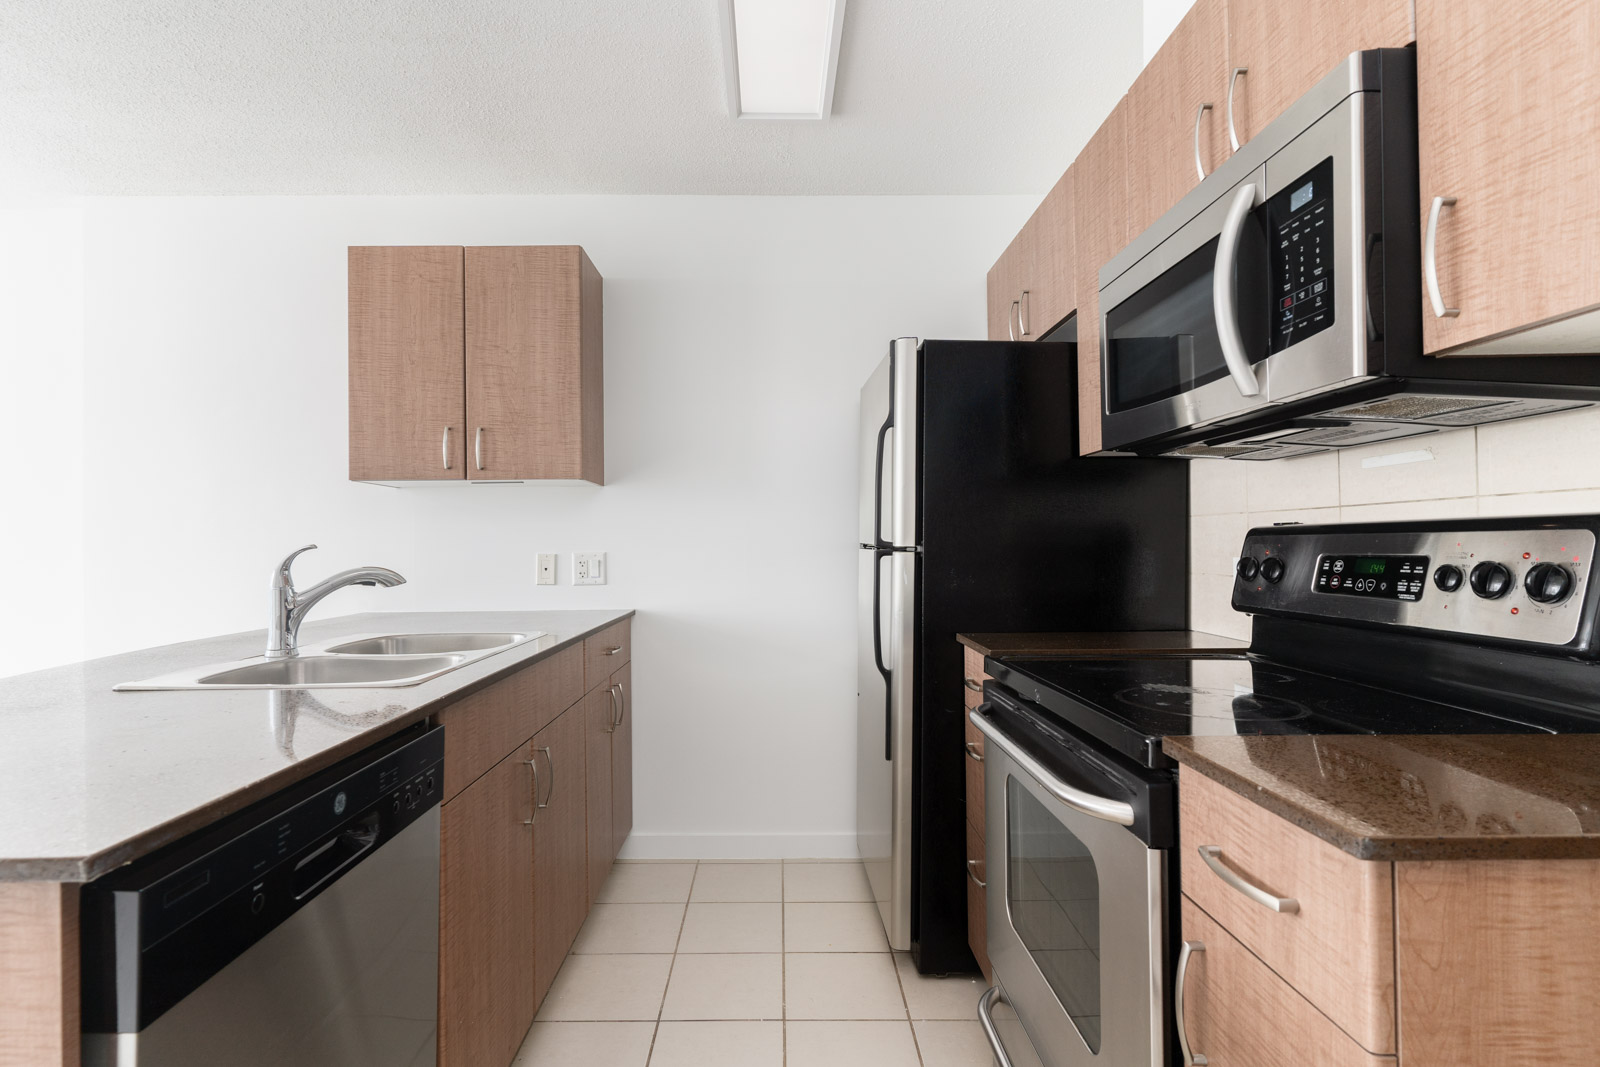 kitchen with all essential appliances